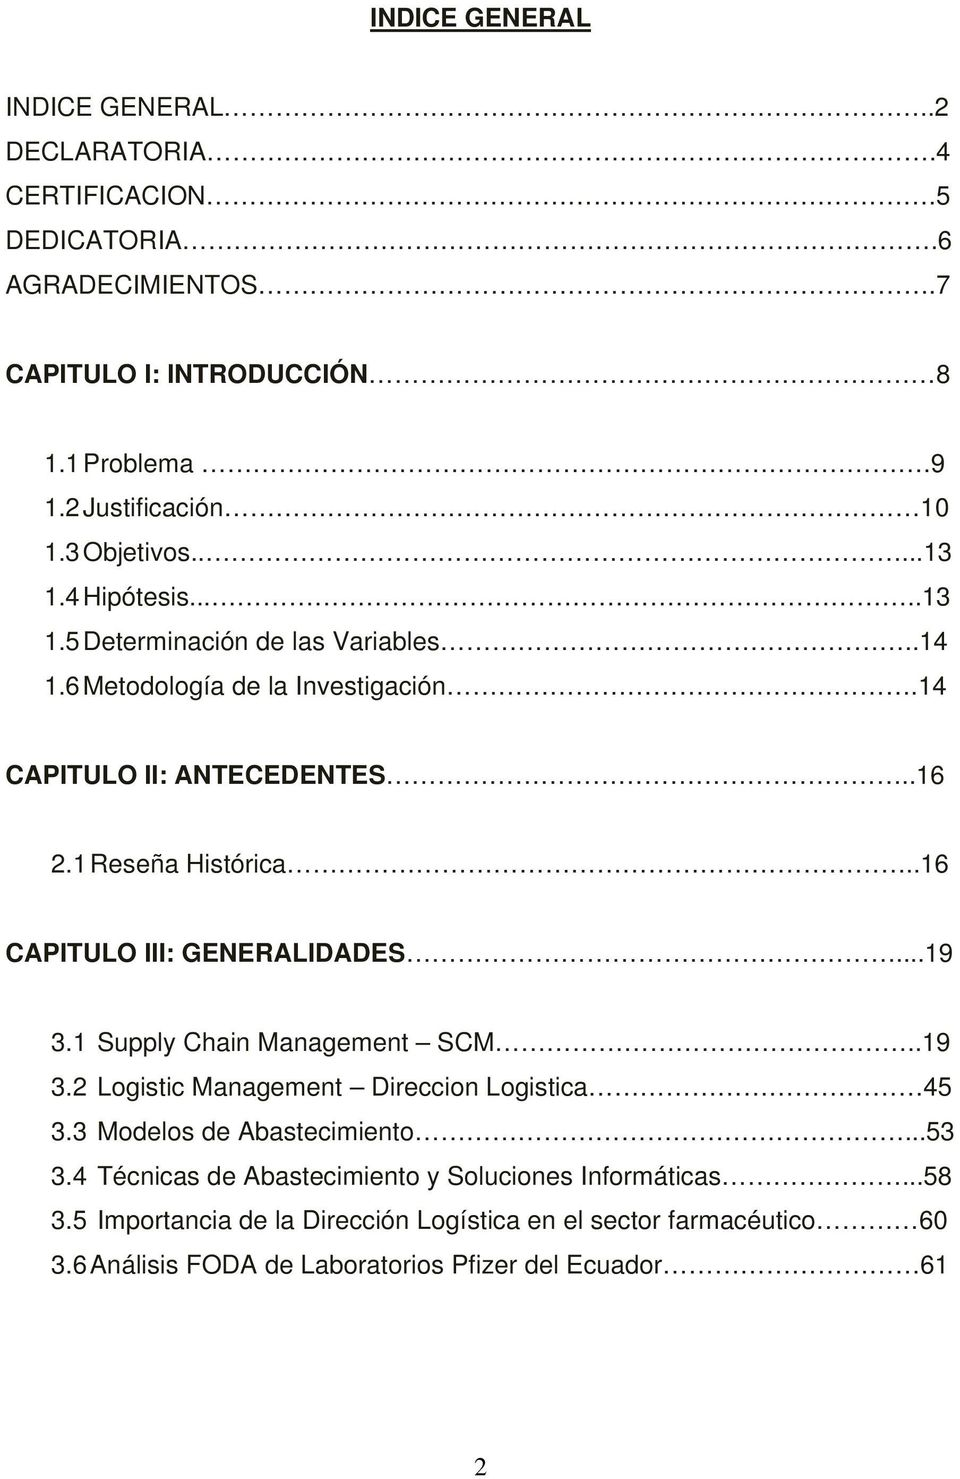 .16 CAPITULO III: GENERALIDADES...19 3.1 Supply Chain Management SCM..19 3.2 Logistic Management Direccion Logistica 45 3.3 Modelos de Abastecimiento...53 3.